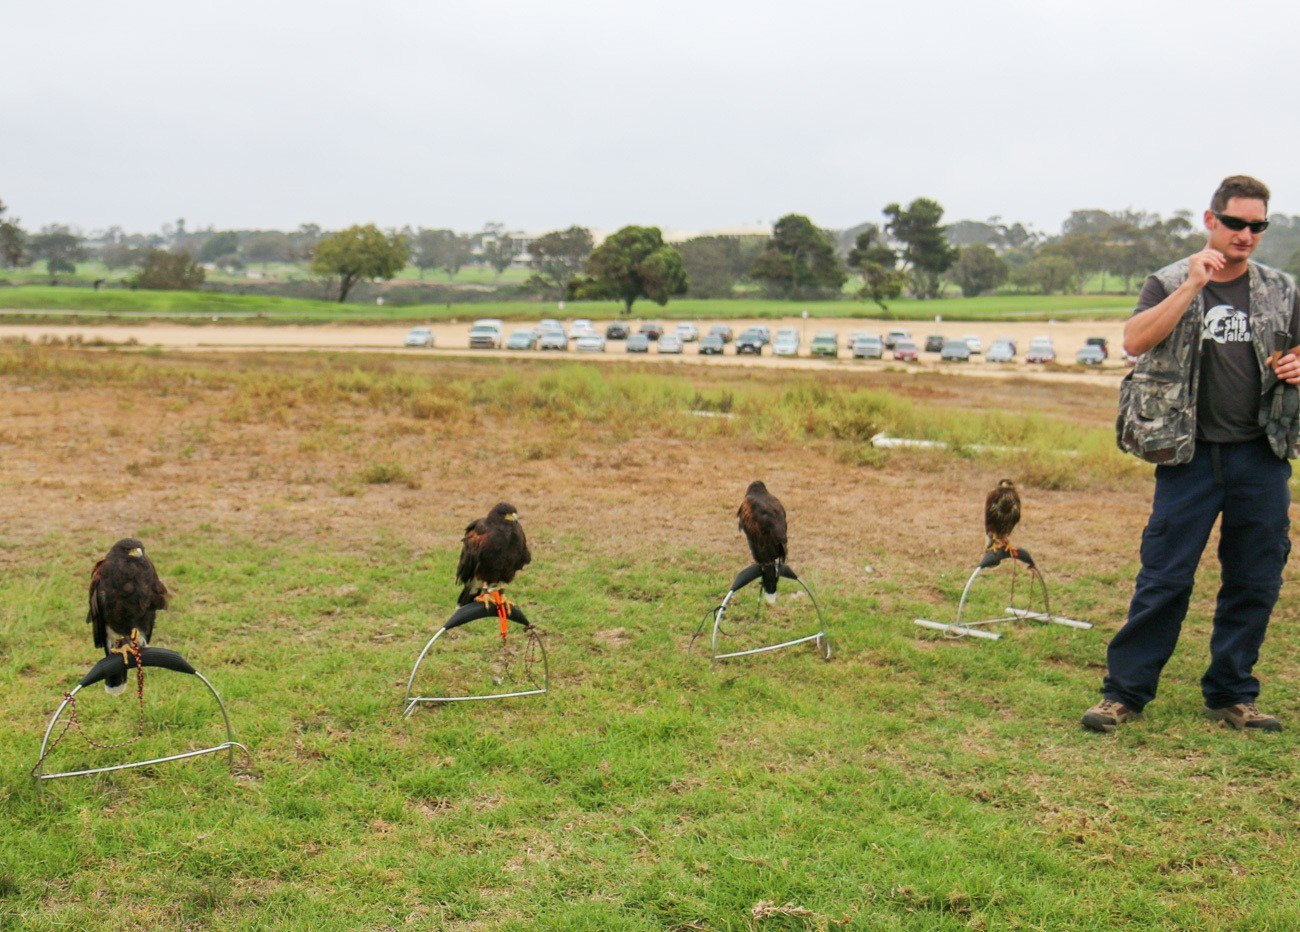 Harris's hawks waiting to fly during a basic falconry lesson at Torrey Pines Gliderport in La Jolla